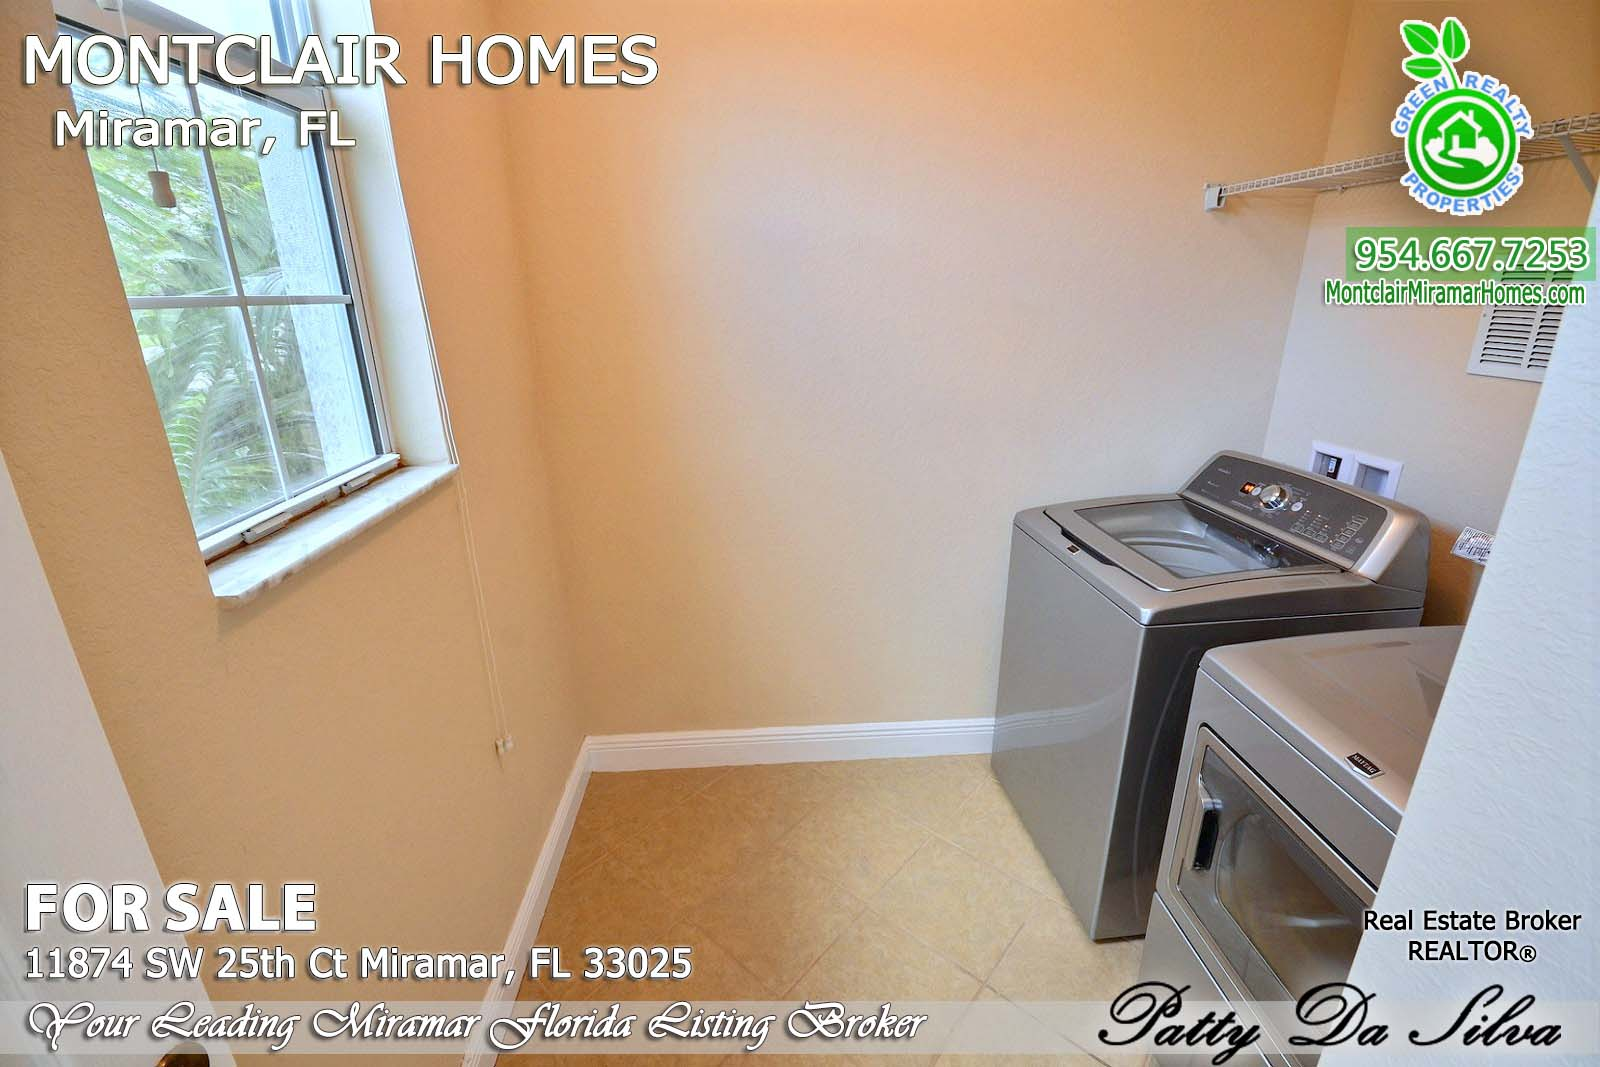 11874 SW 25 CT, Miramar FL 33025 - Montclair (2) - Copy